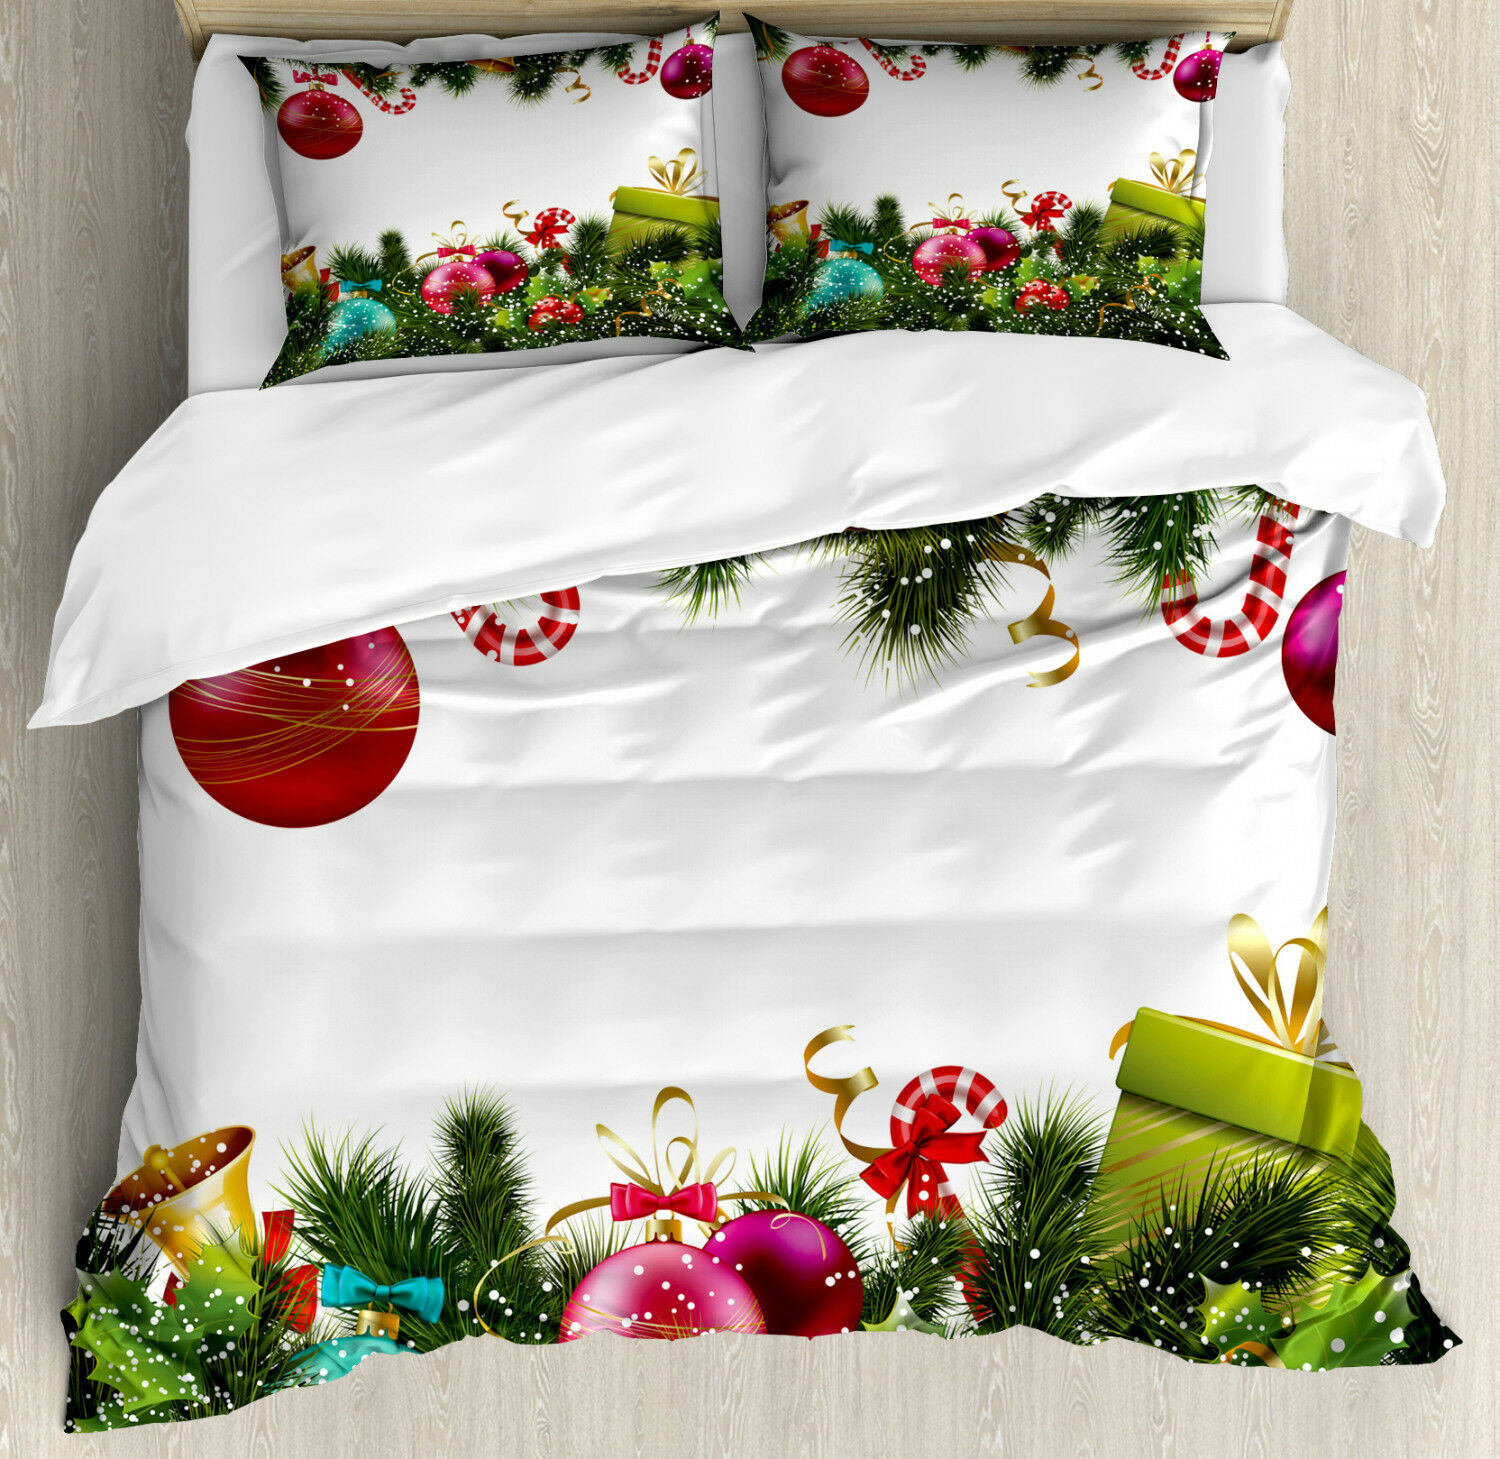 Christmas Duvet Cover Set with Pillow Shams New Year Greeting Print